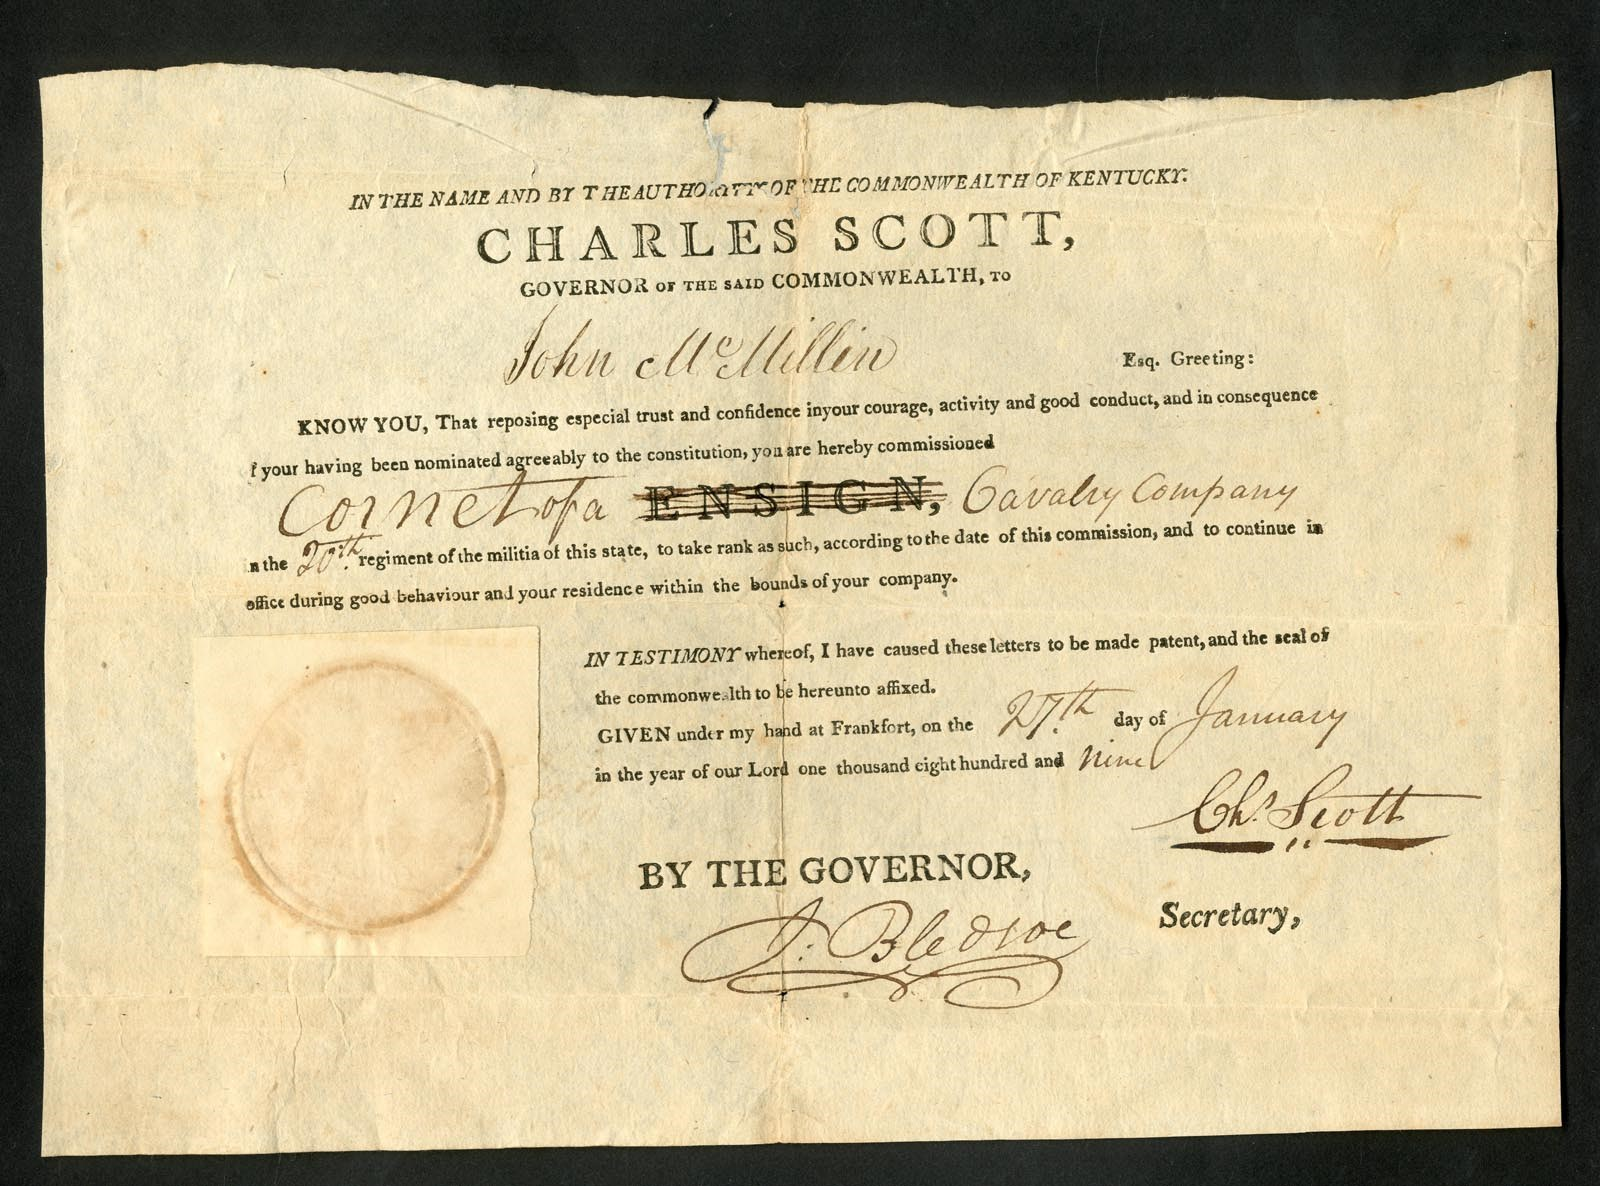 George Washington Colonel Charles Scott 1809 Signed Document (PSA)